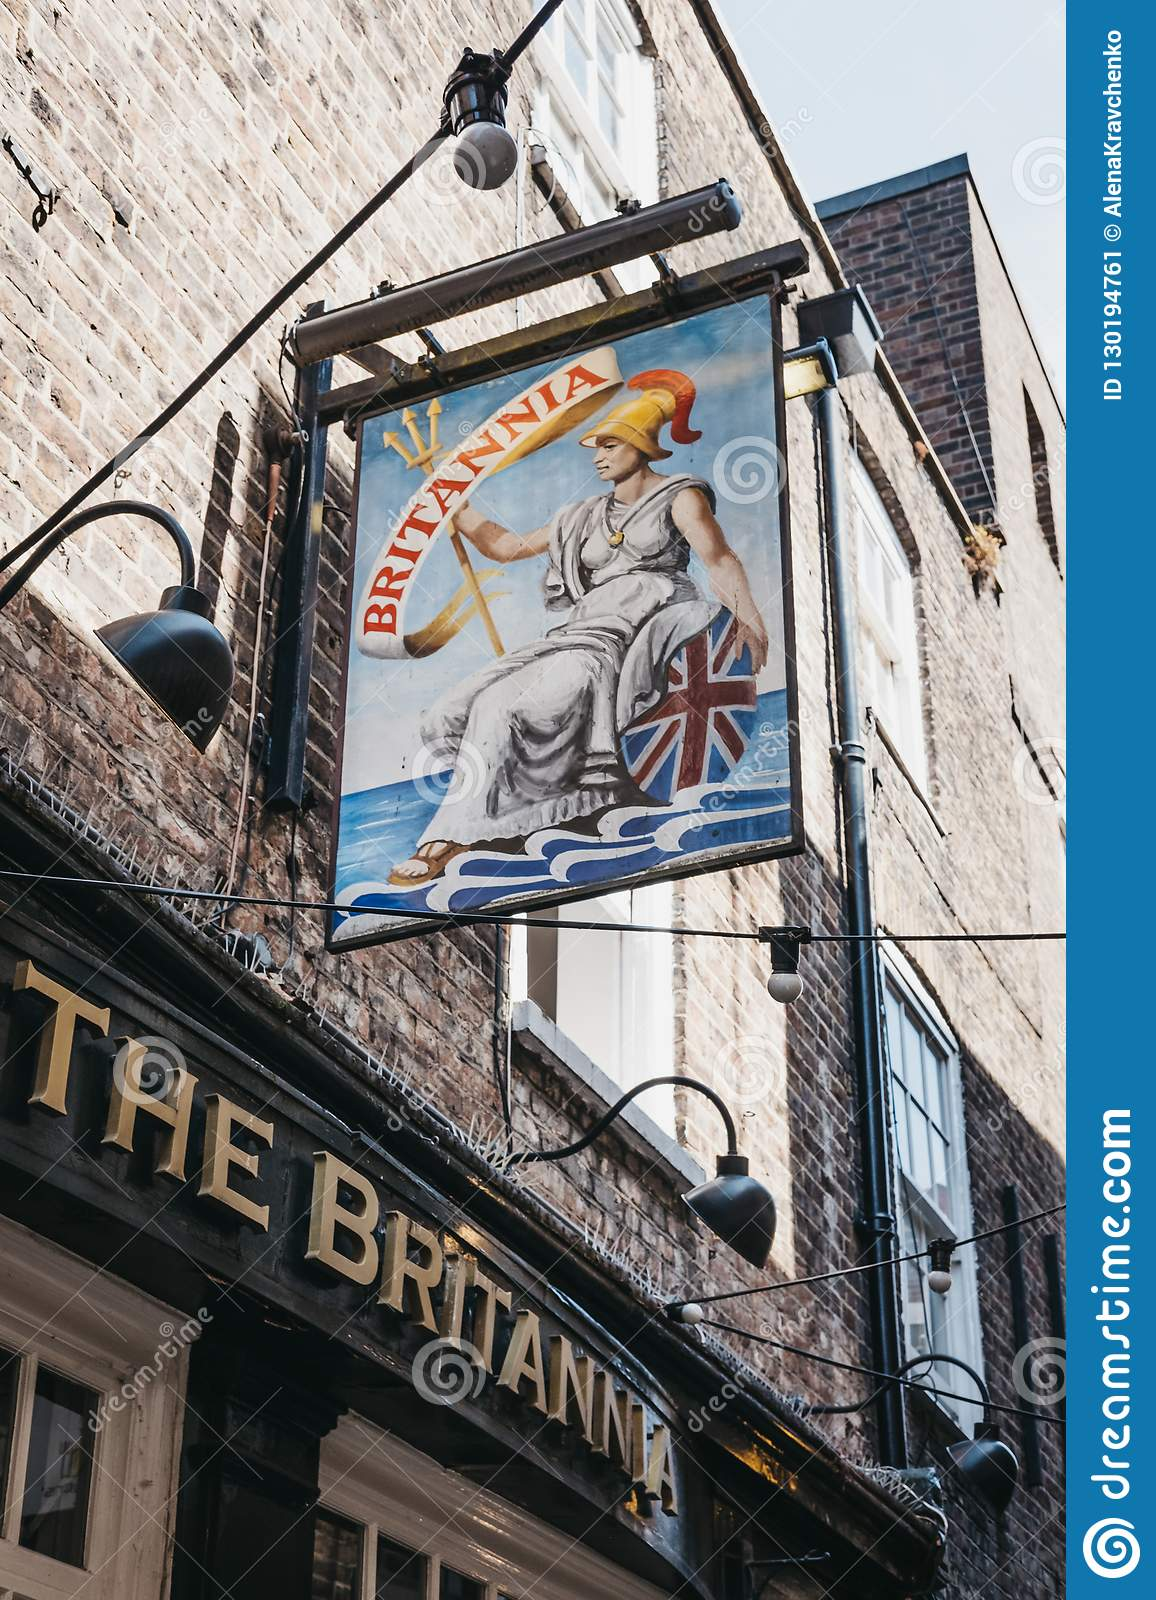 Sign at the entrance of The Brittania pub in Richmond, London, U